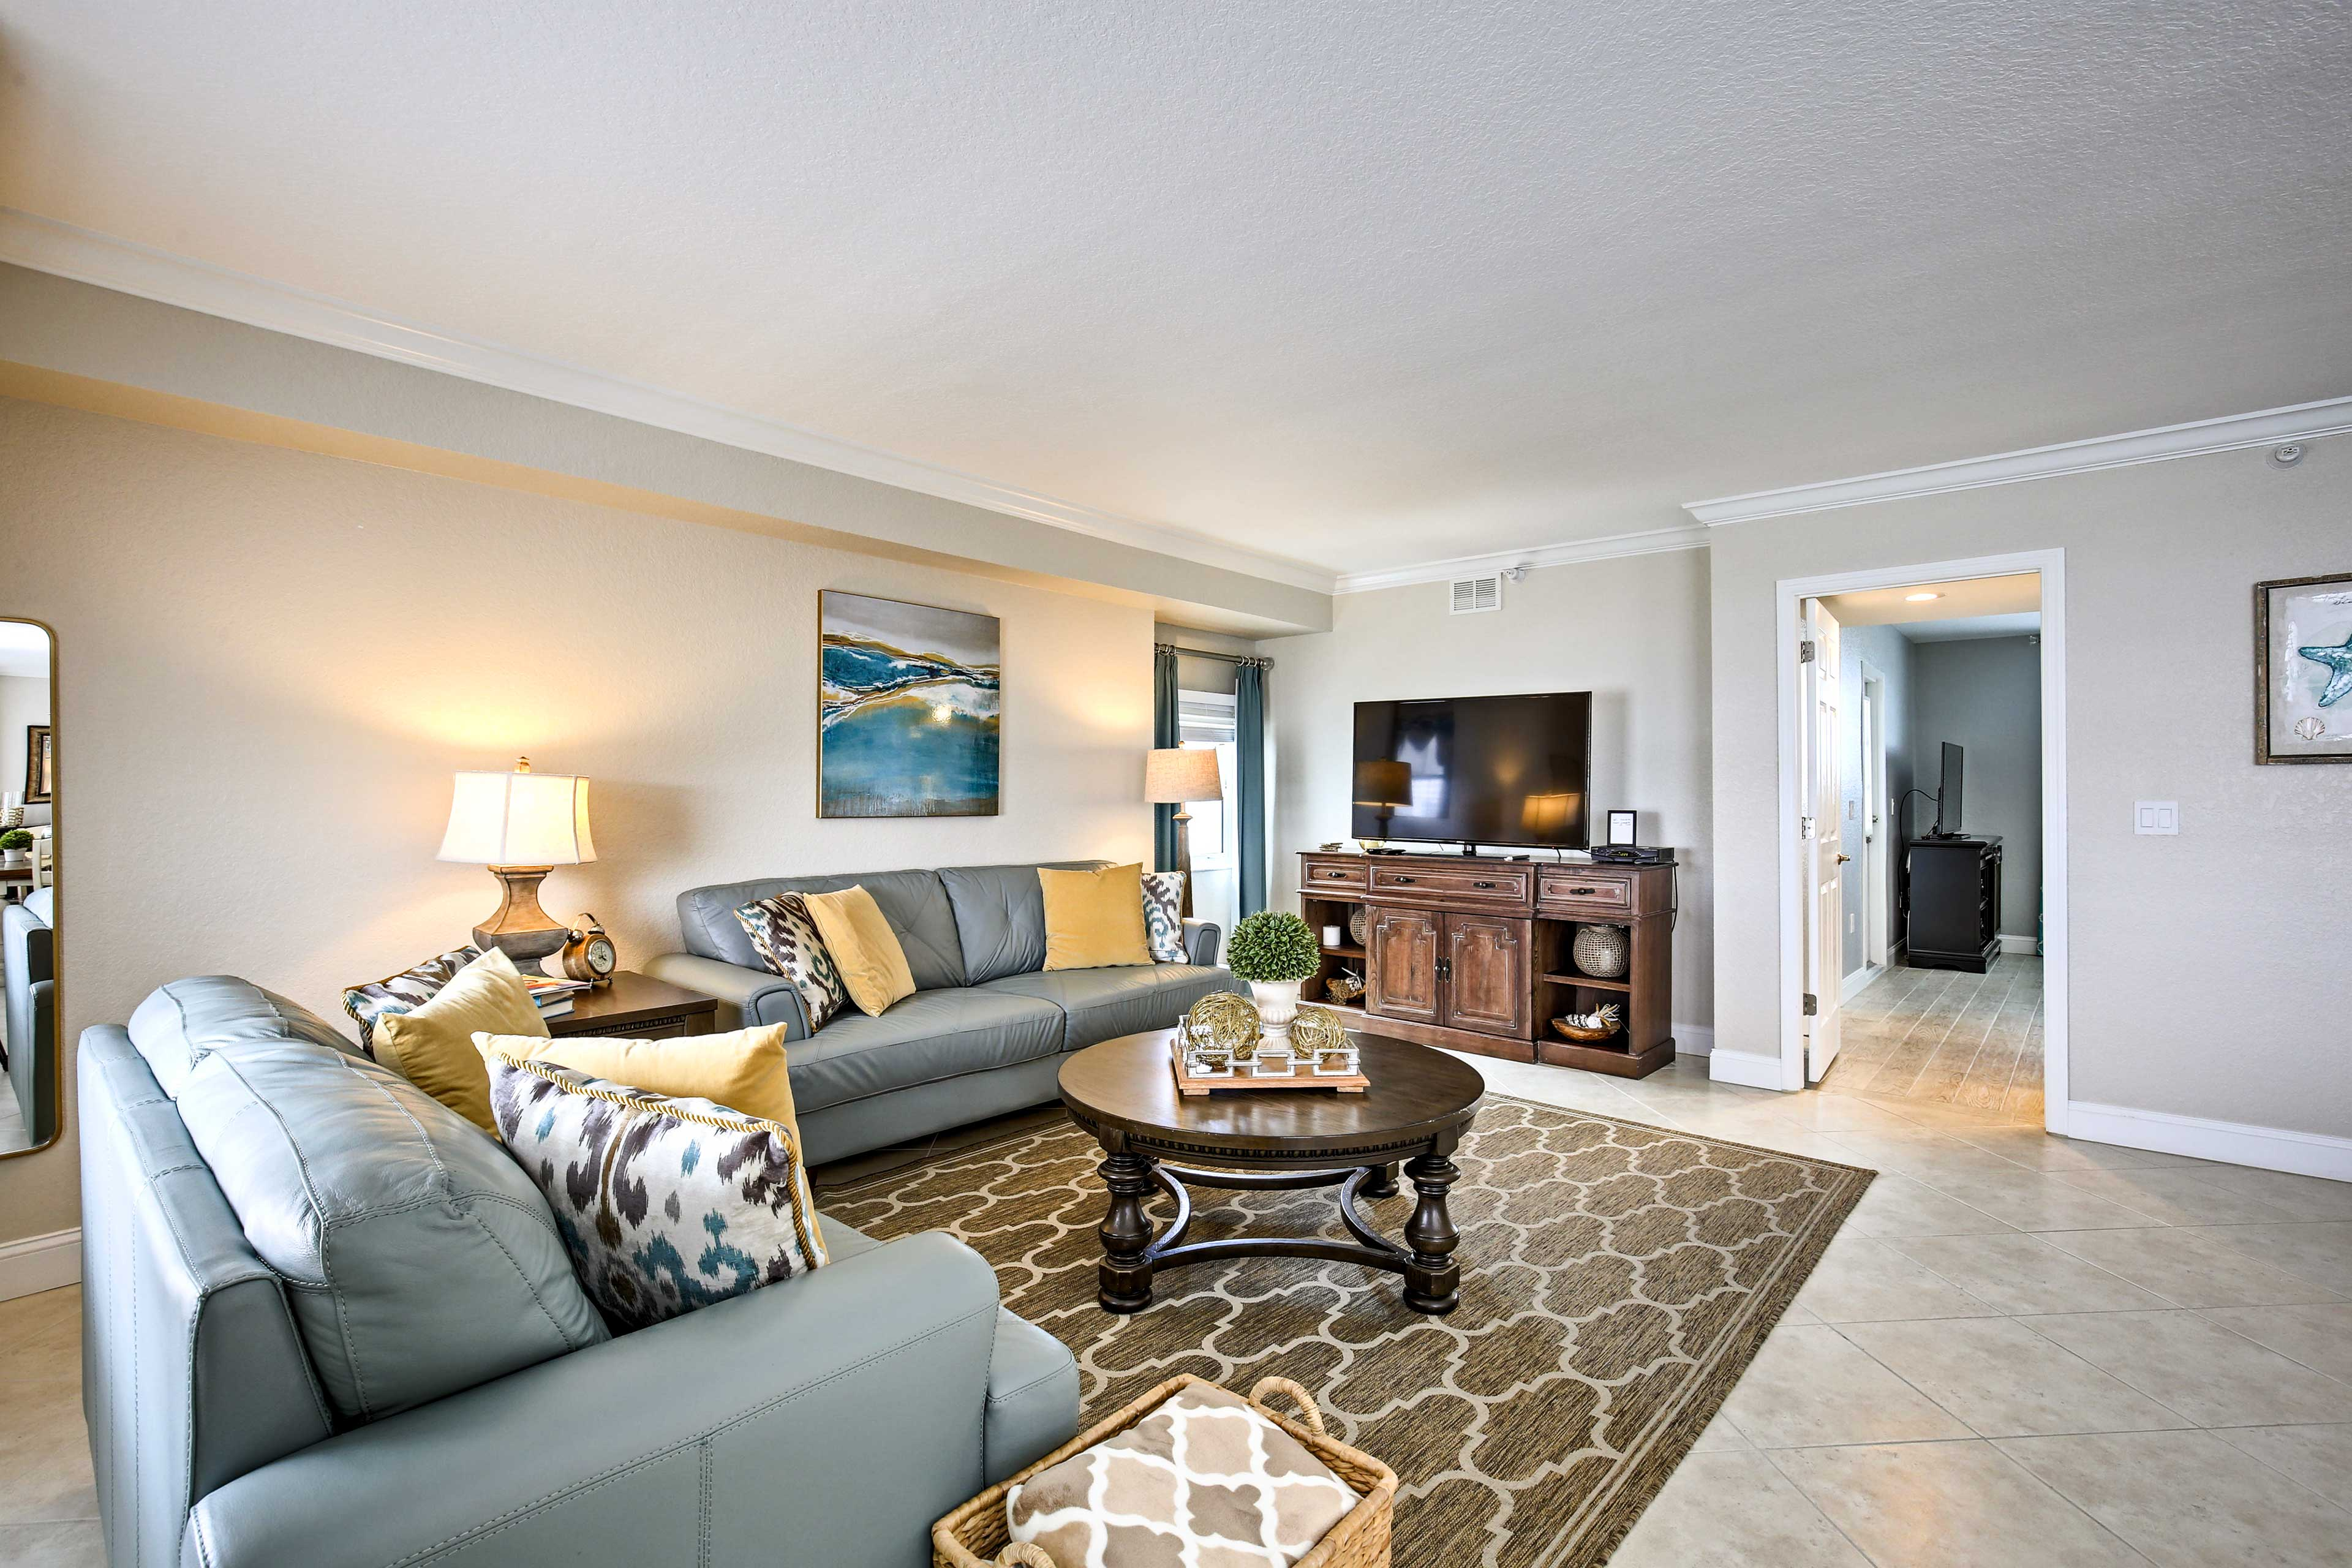 The interior is beautifully decorated with beach-themed accents and colors.